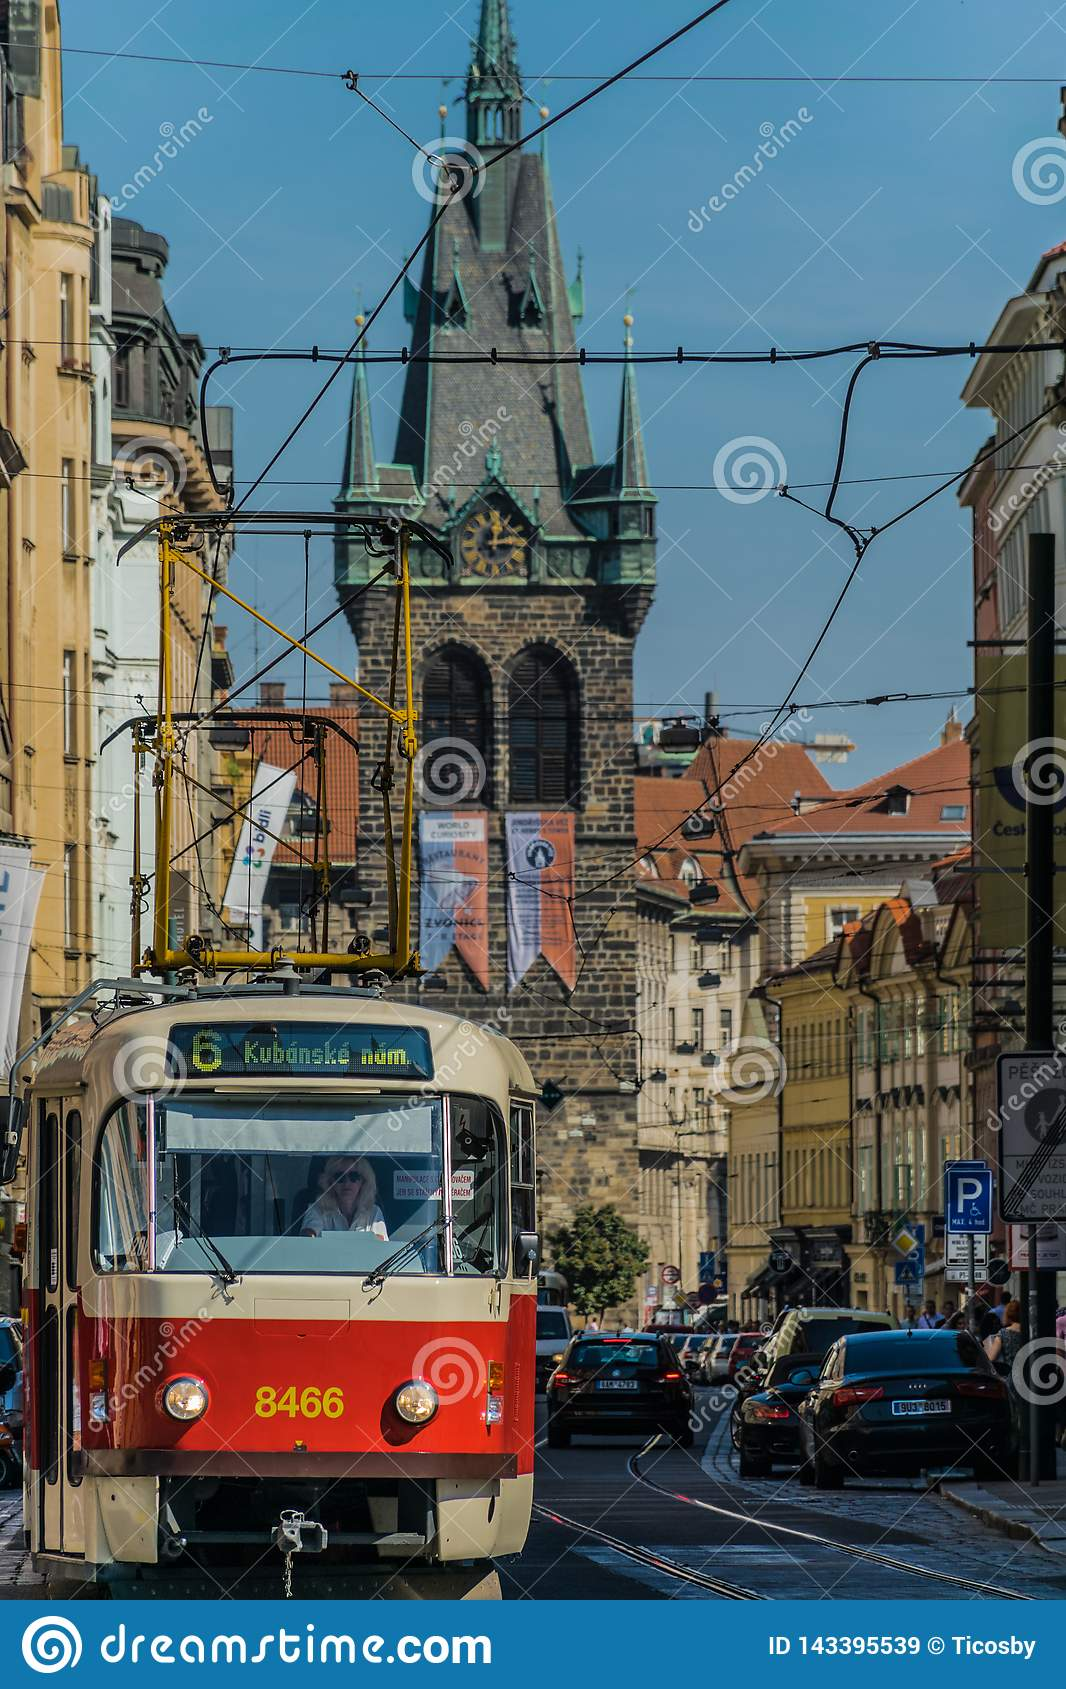 Prague, Czech Republic - September , 17, 2019: Female Driver of a Retro tram at old town of Prague, with henry`s tower